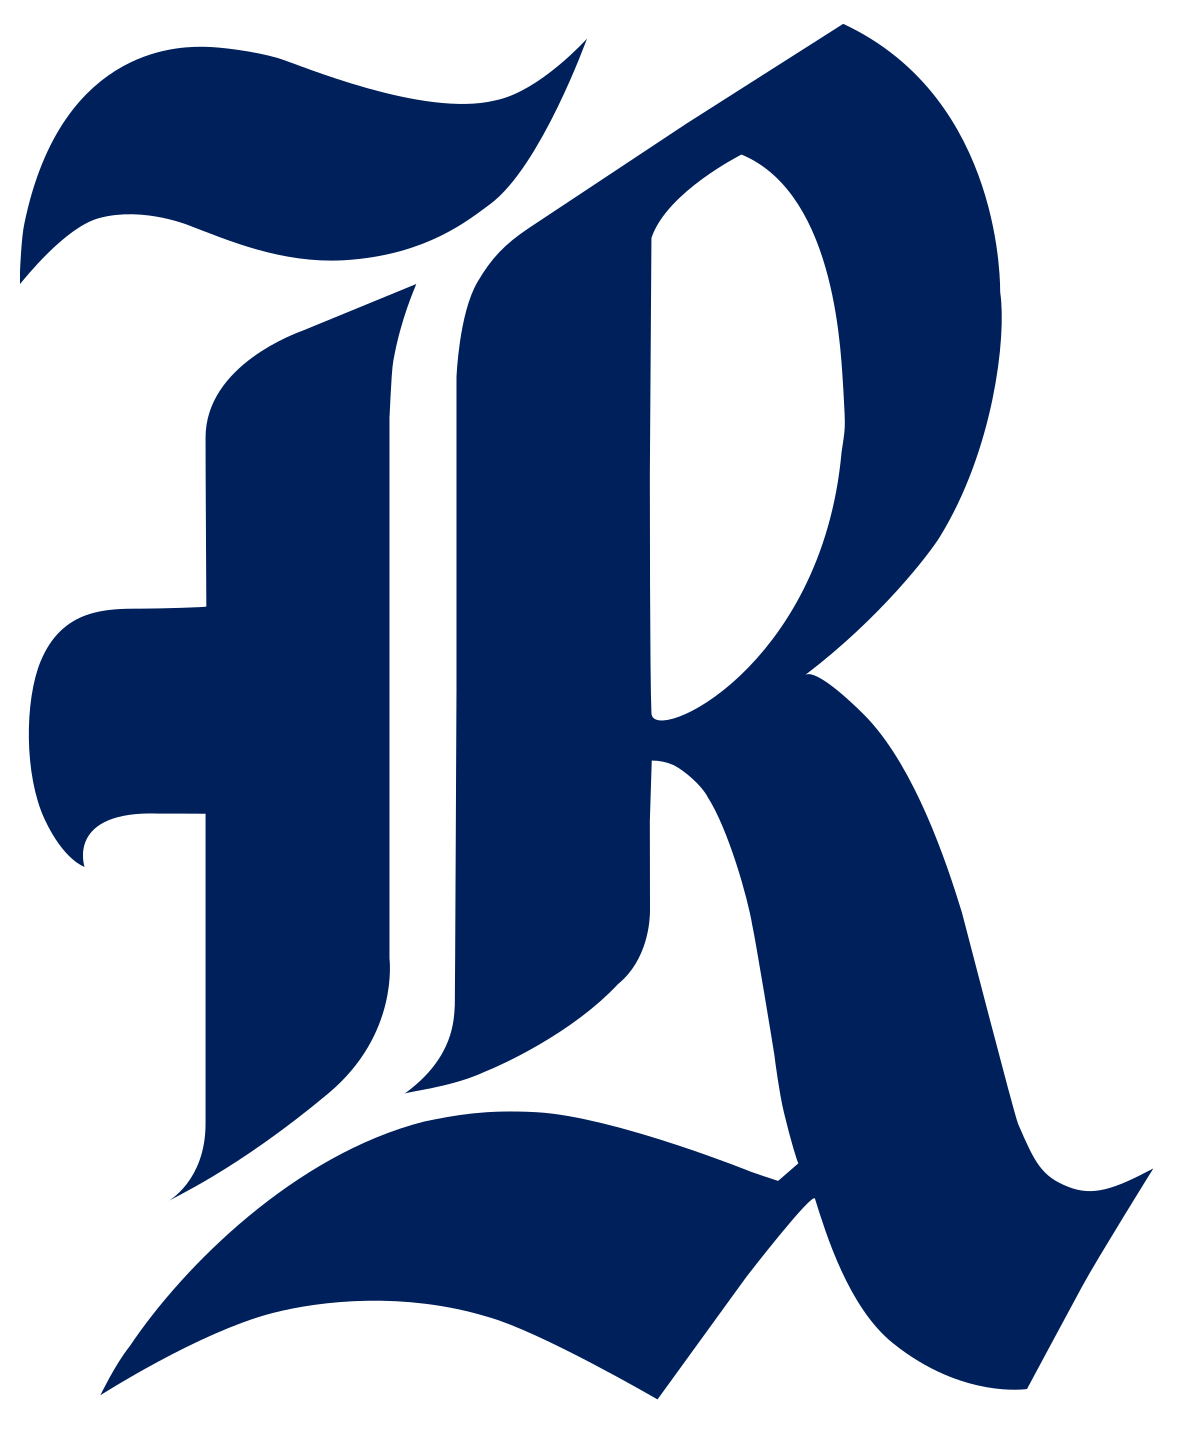 Clipart music staff with basketball players as notes image royalty free Rice Owls men's basketball - Wikipedia image royalty free